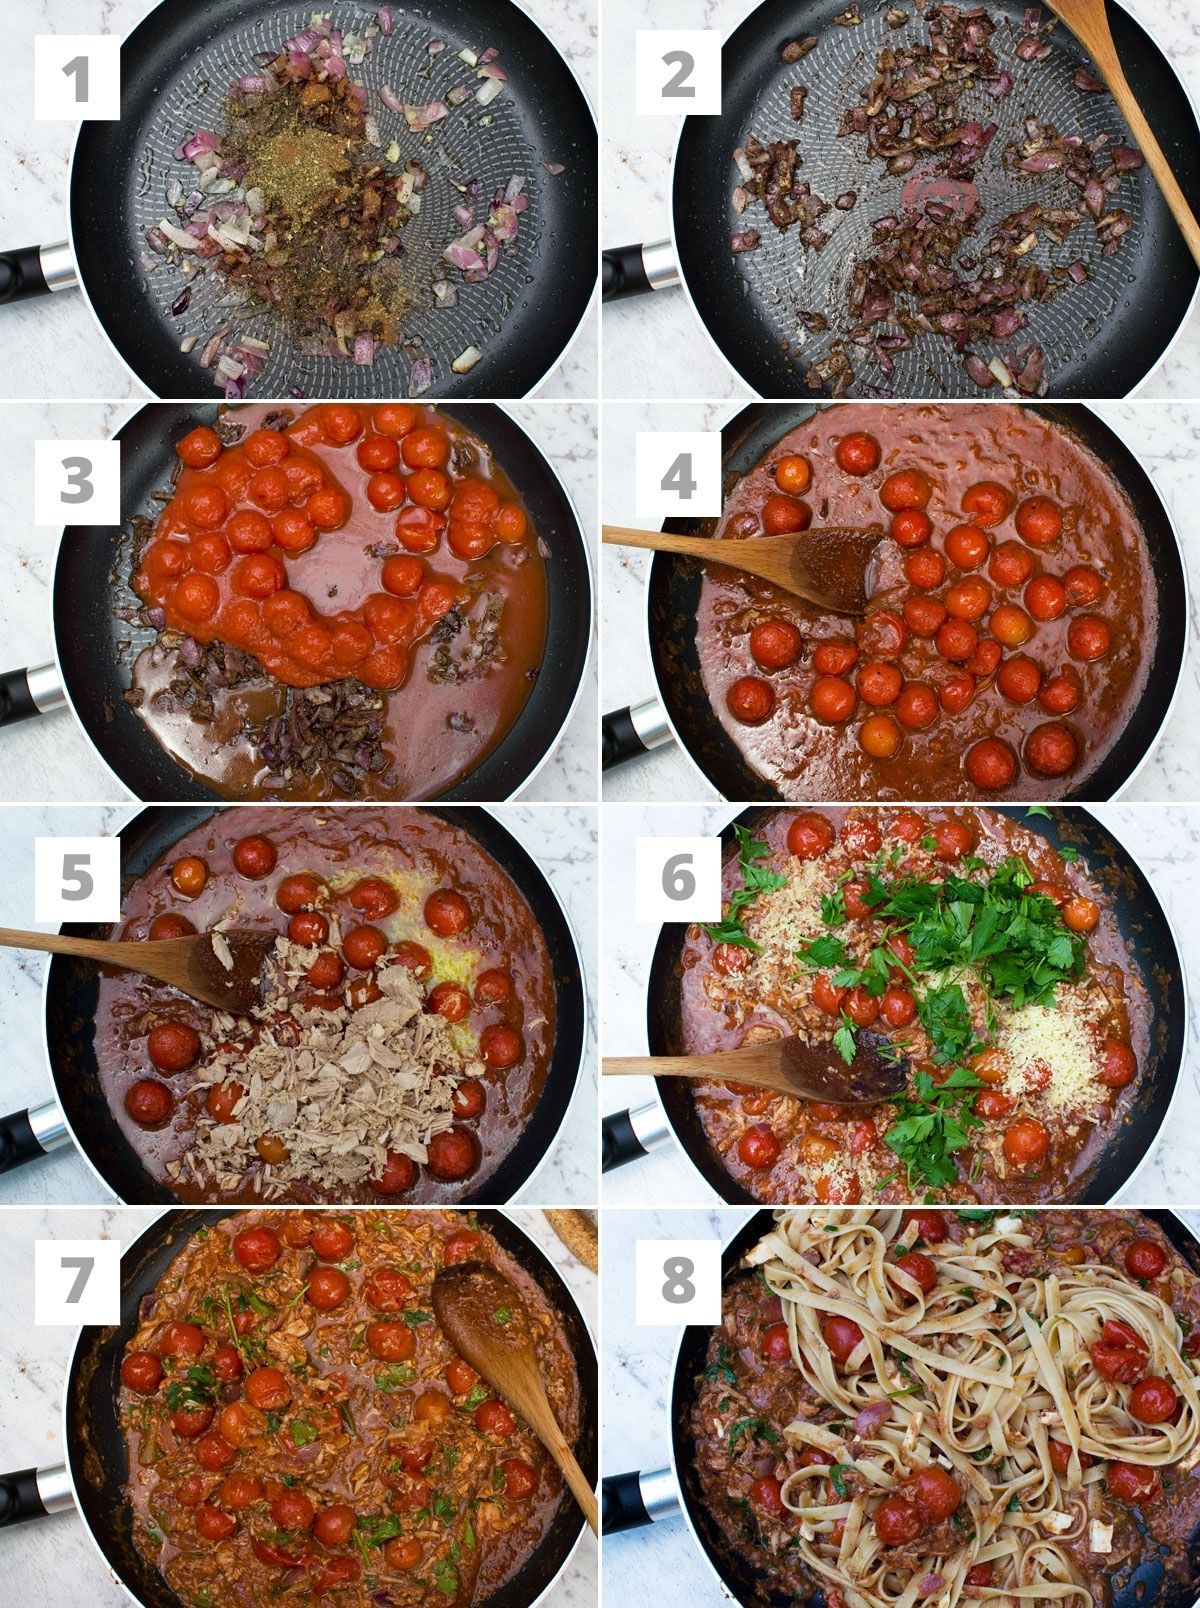 A numbered collage of 8 photos showing how to make lemony tuna spaghetti. Photos show cooking onions with spices, adding tomatoes and simmering, then adding the rest of the ingredients including the pasta to the pan